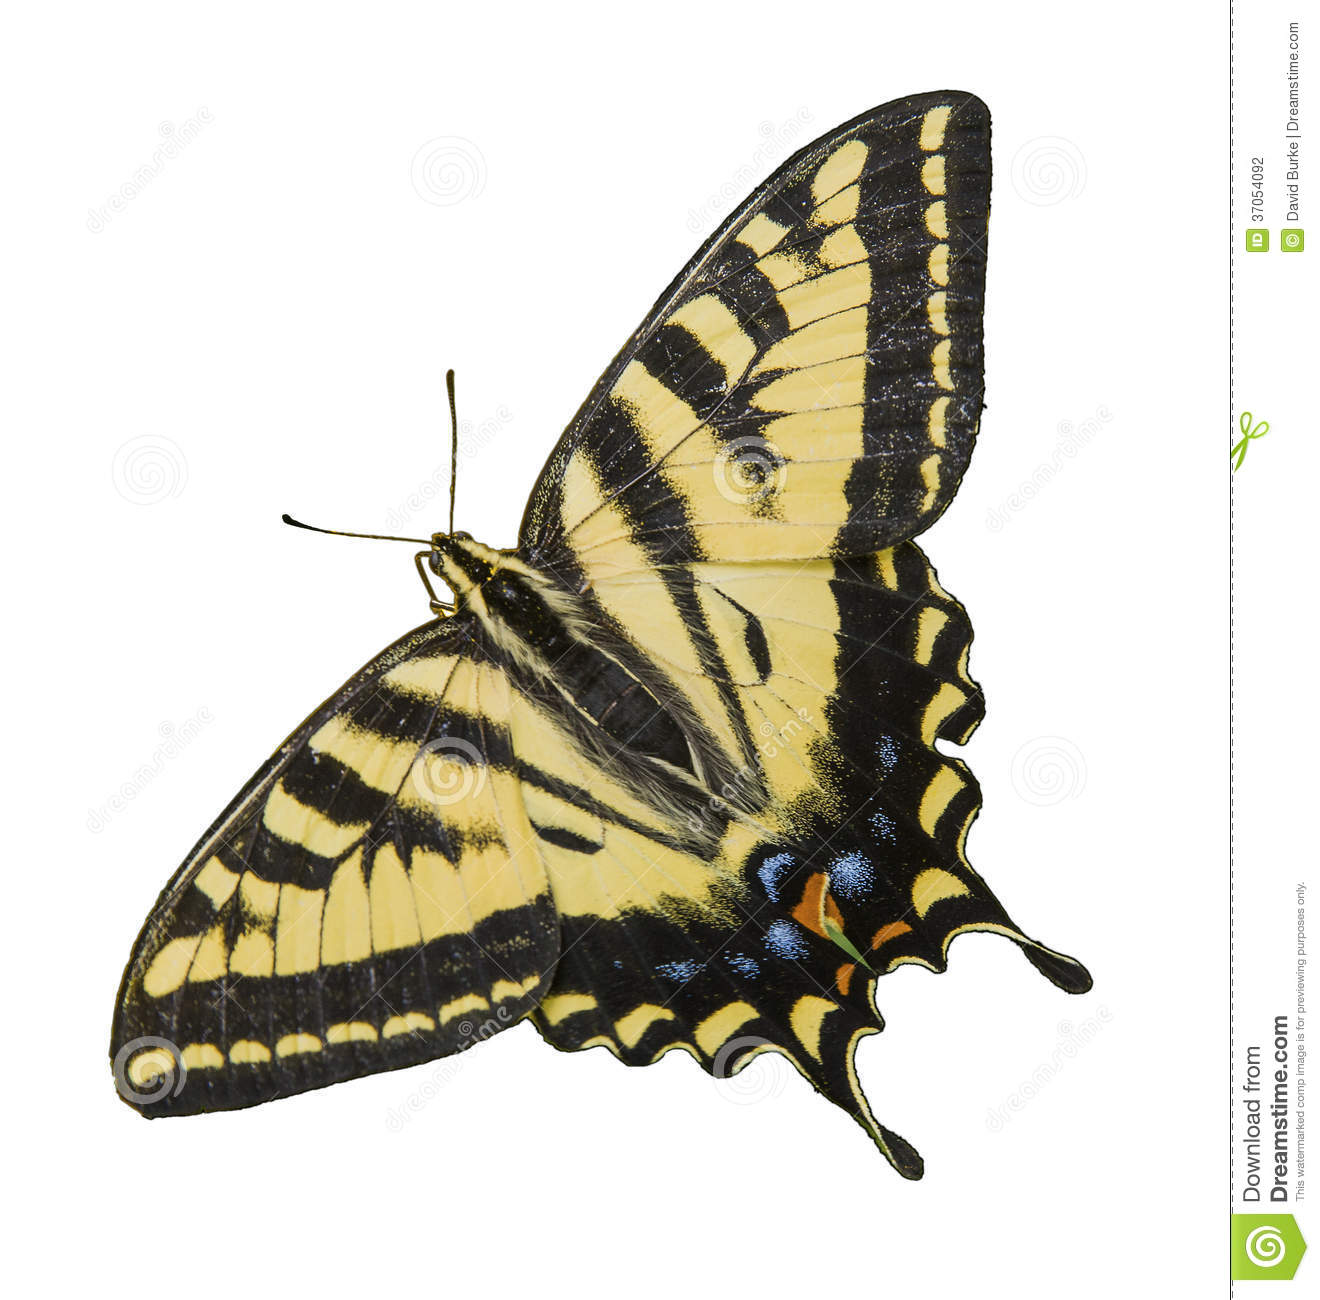 Branco isolado Tiger Swallowtail Butterfly ocidental